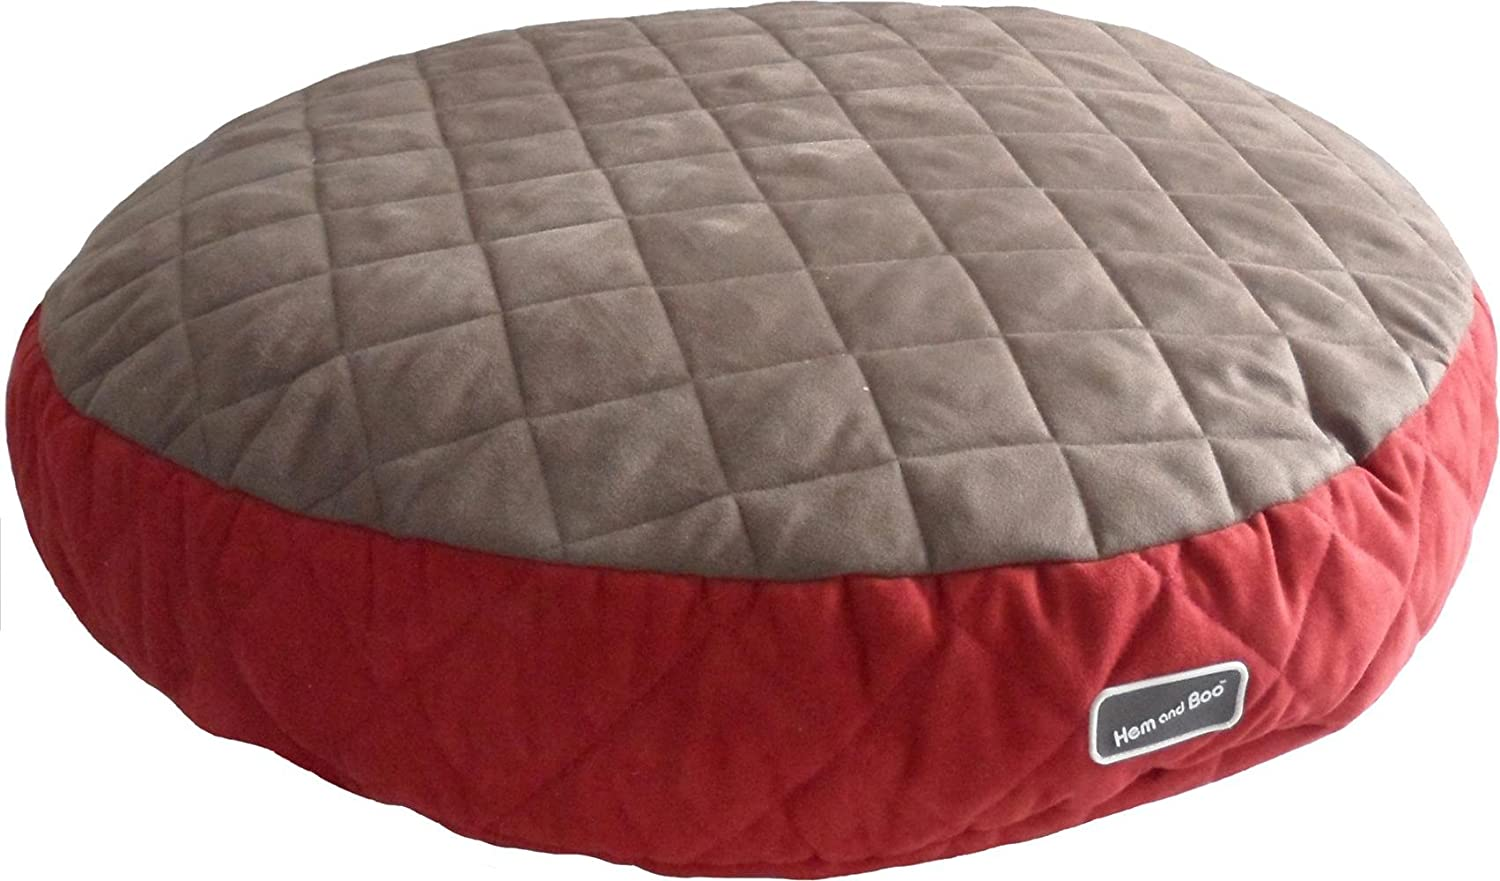 Hem and Boo Deep Fill Quilted Round Dog Bed  Brown and Brick Red